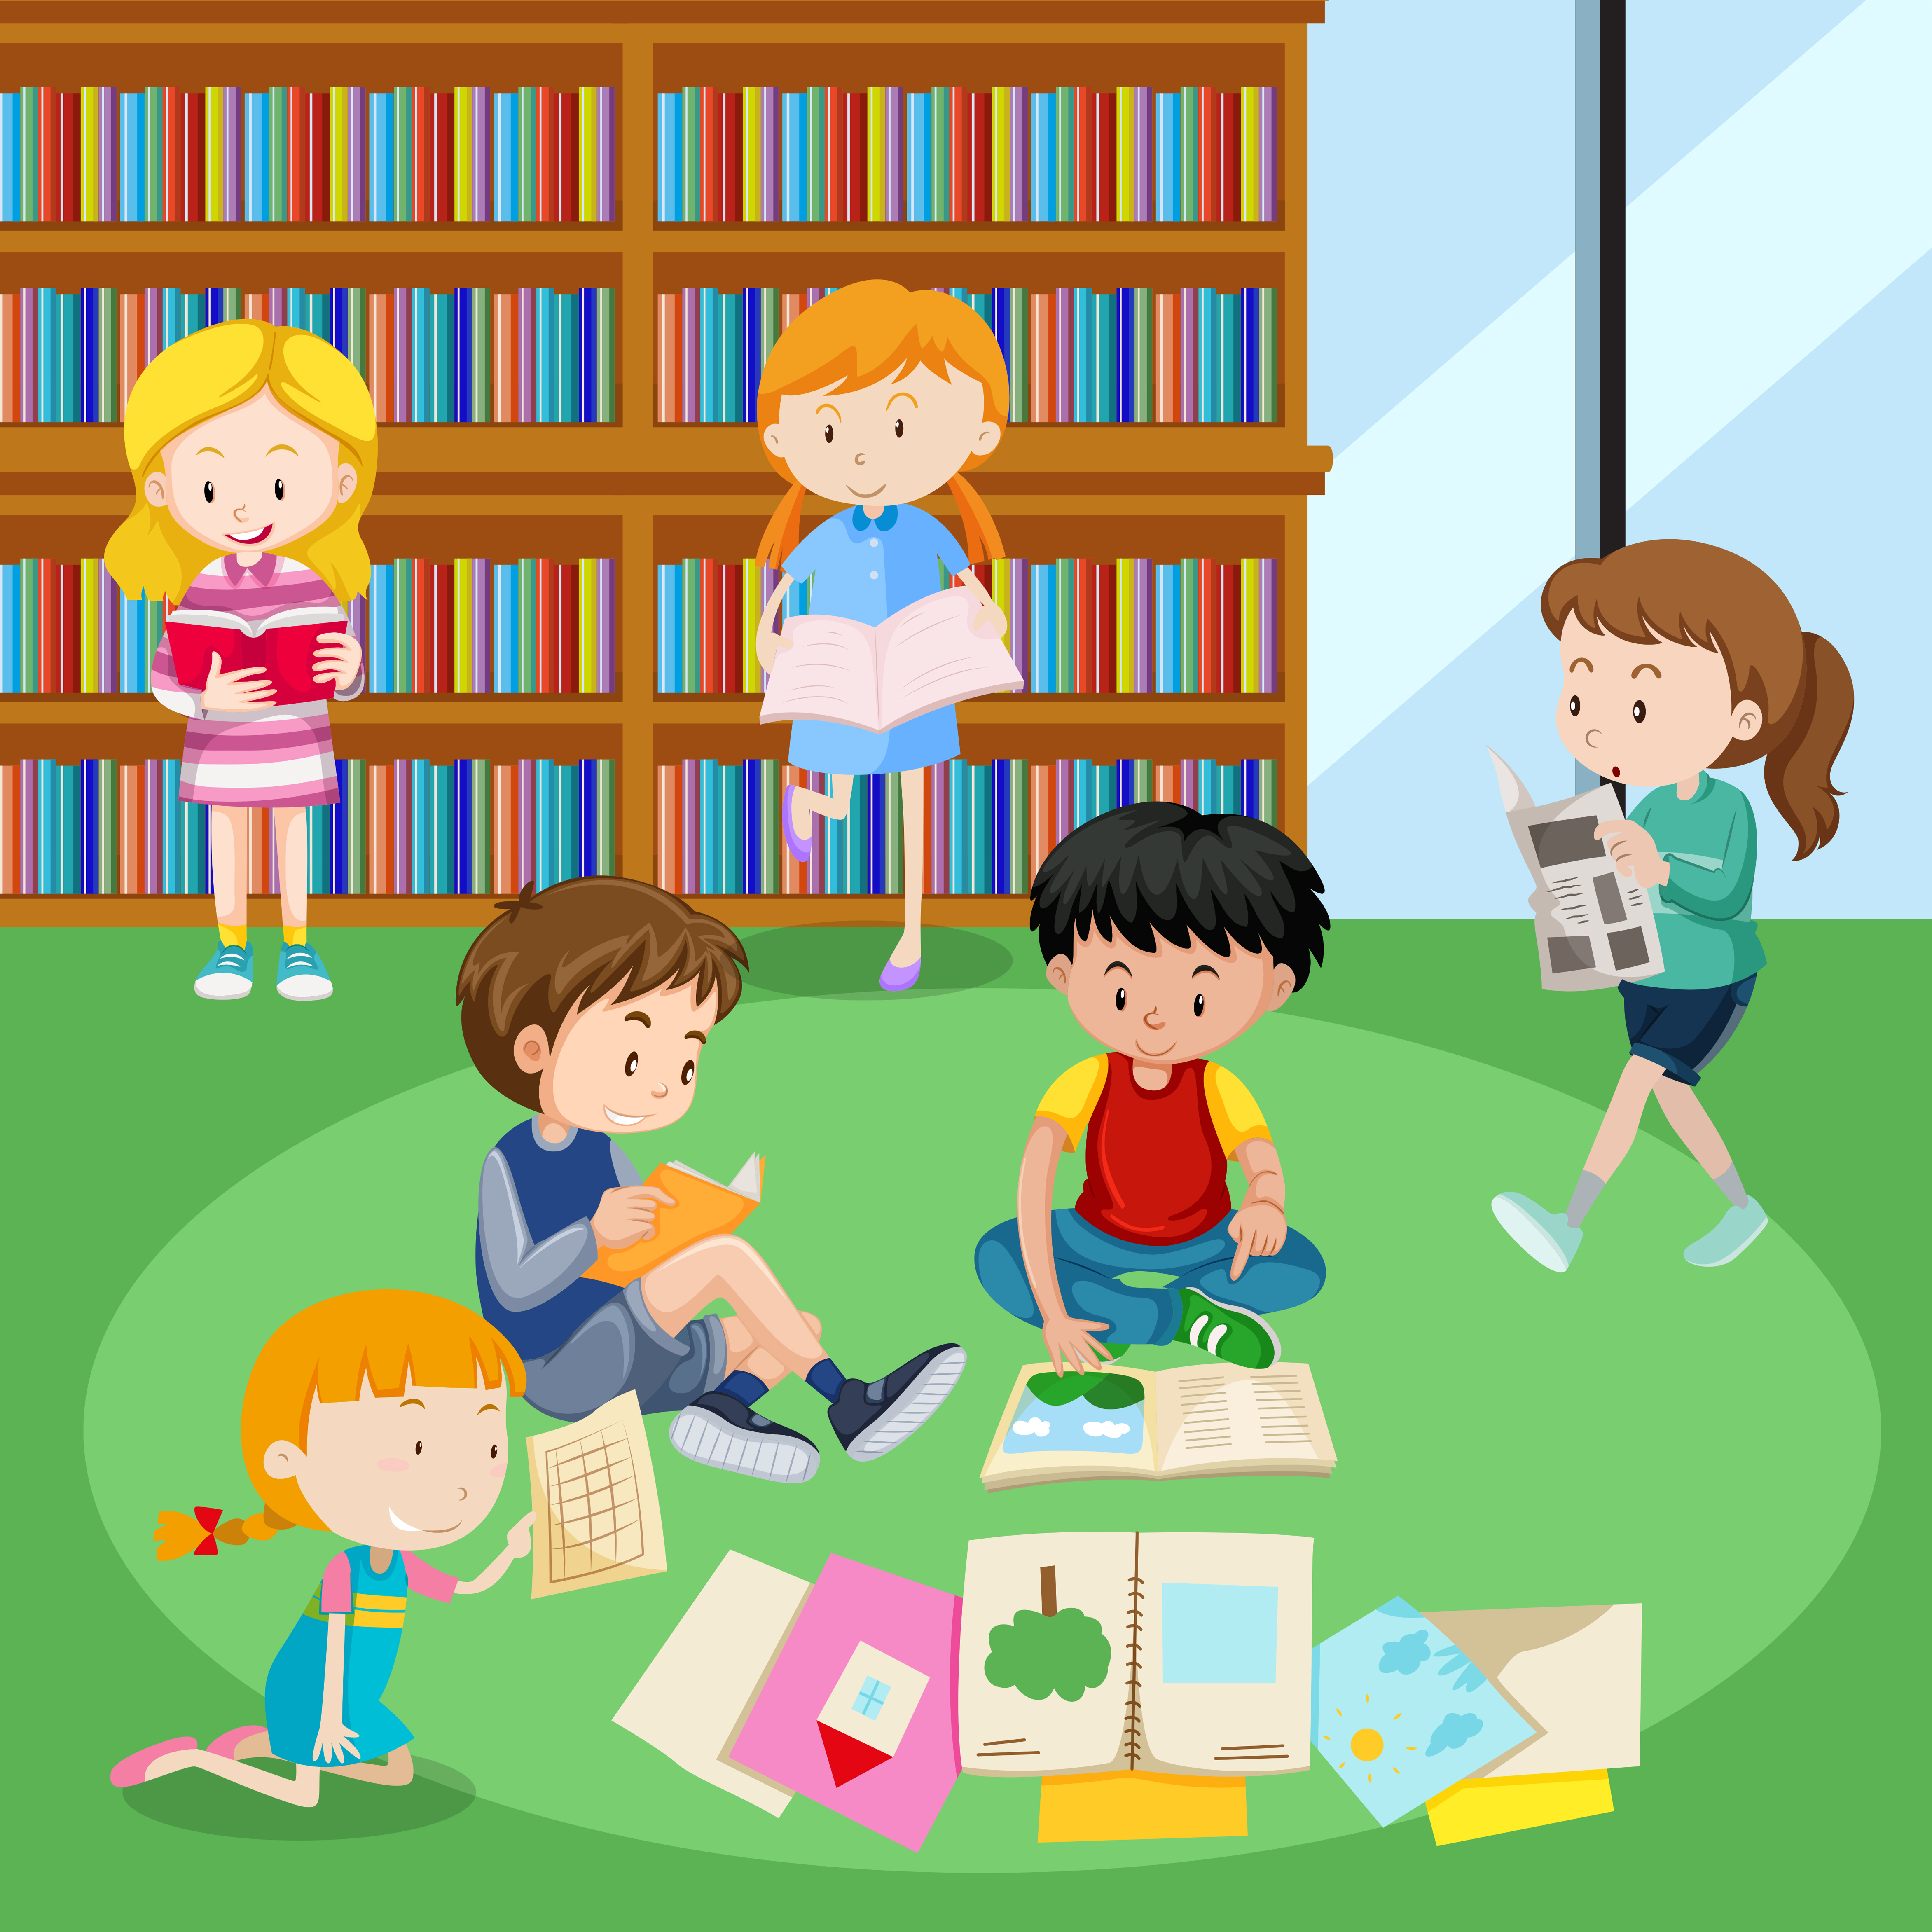 Students reading books in library - Download Free Vectors ...